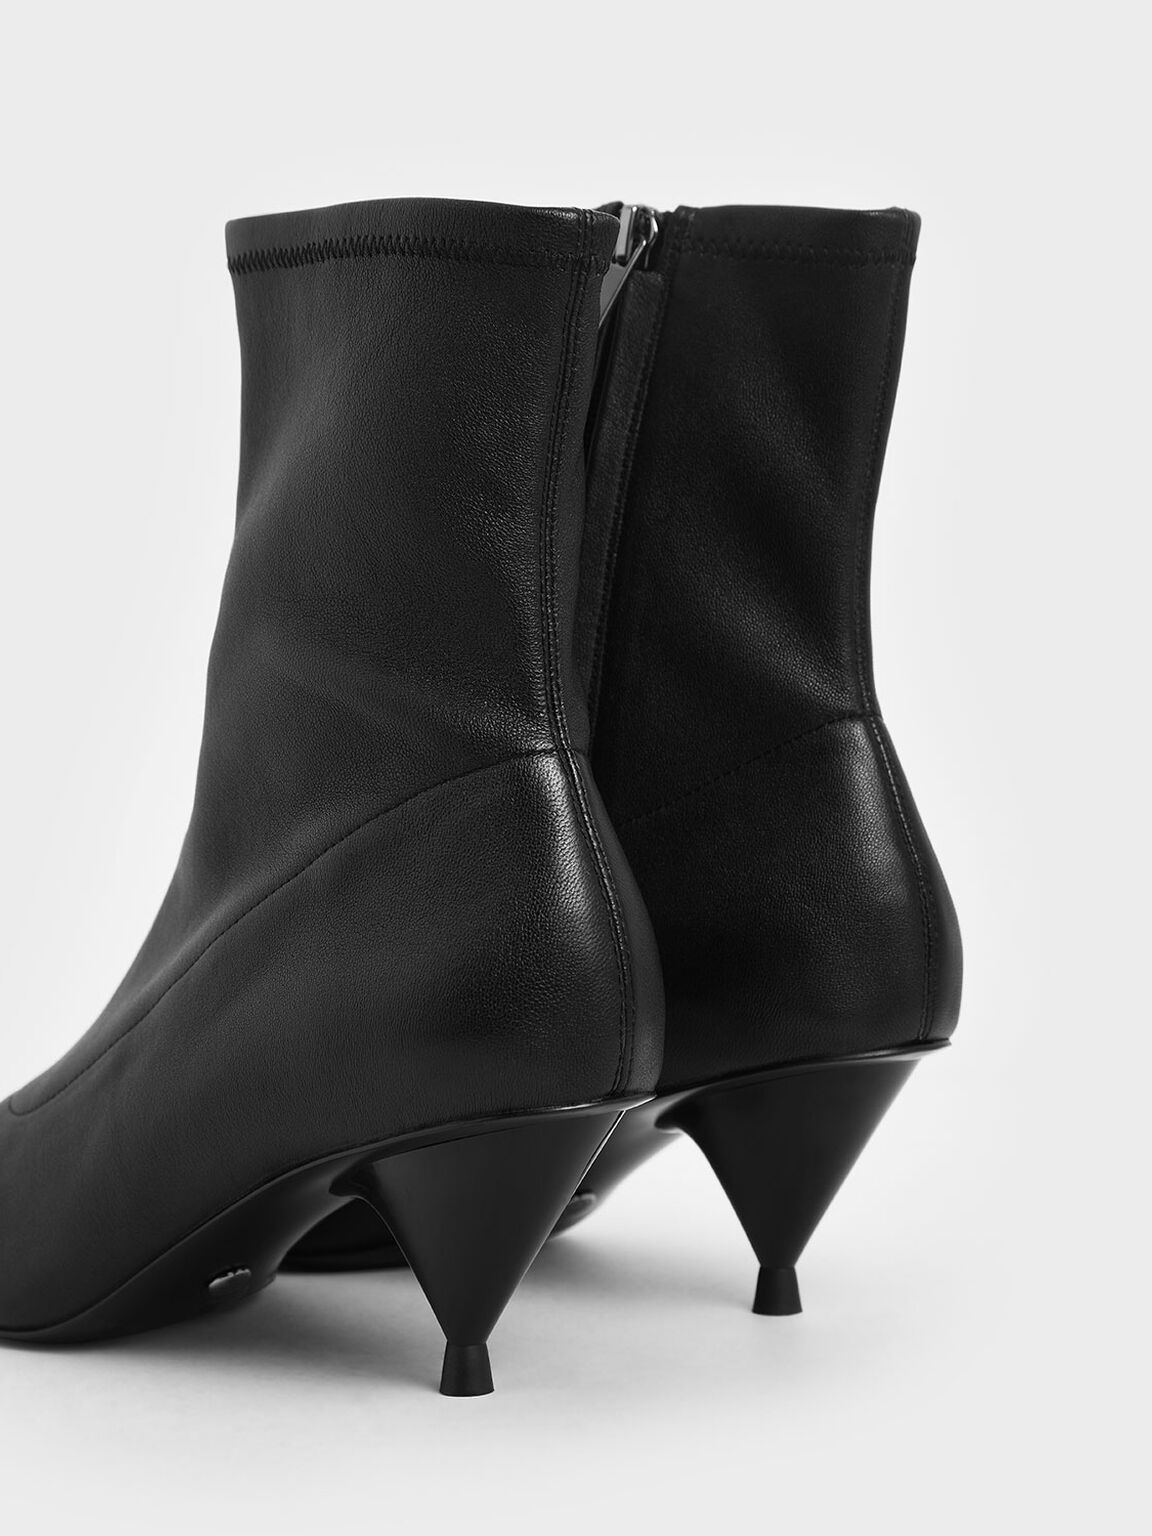 Leather Cone Heel Ankle Boots, Black, hi-res